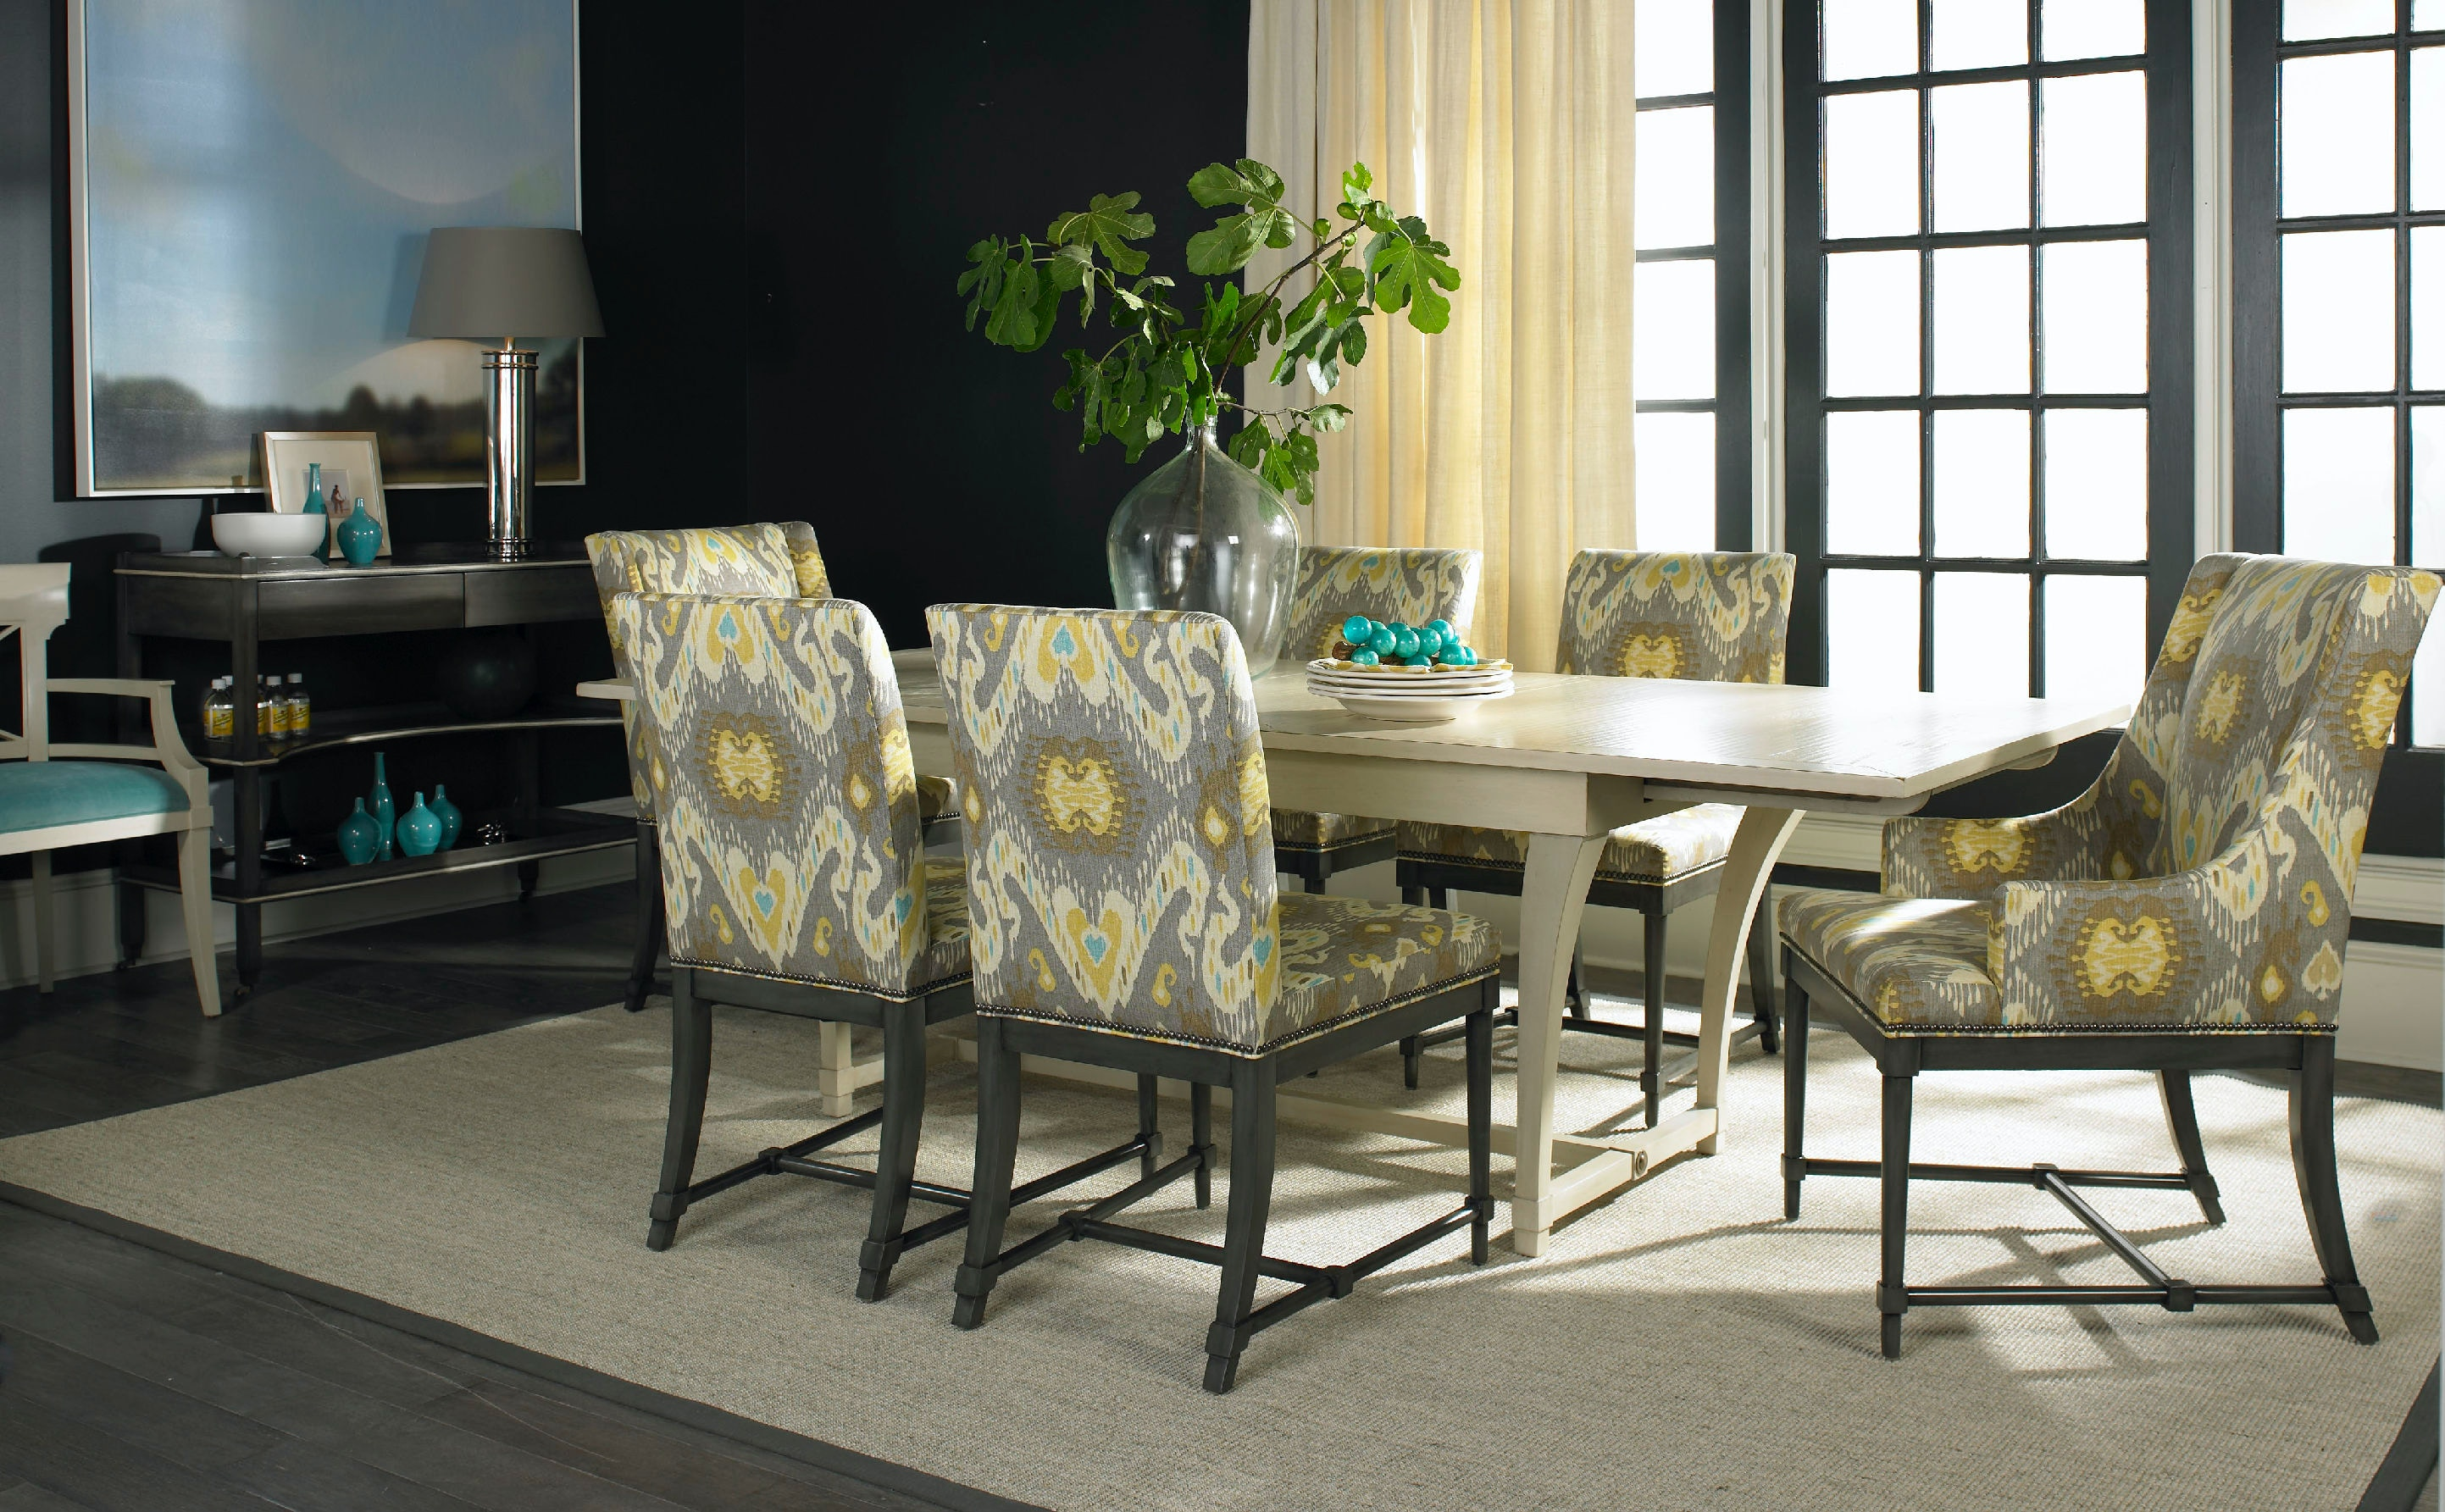 Vanguard Dining Room Chronos Side Chair V320s  Paul. Cheap Kitchen Table. Folks Southern Kitchen. Dgbg Kitchen. Sen Asian Kitchen. Kitchen Shelves. Gas Kitchen Range. Kraftmaid Kitchen. Country Style Kitchen Tables